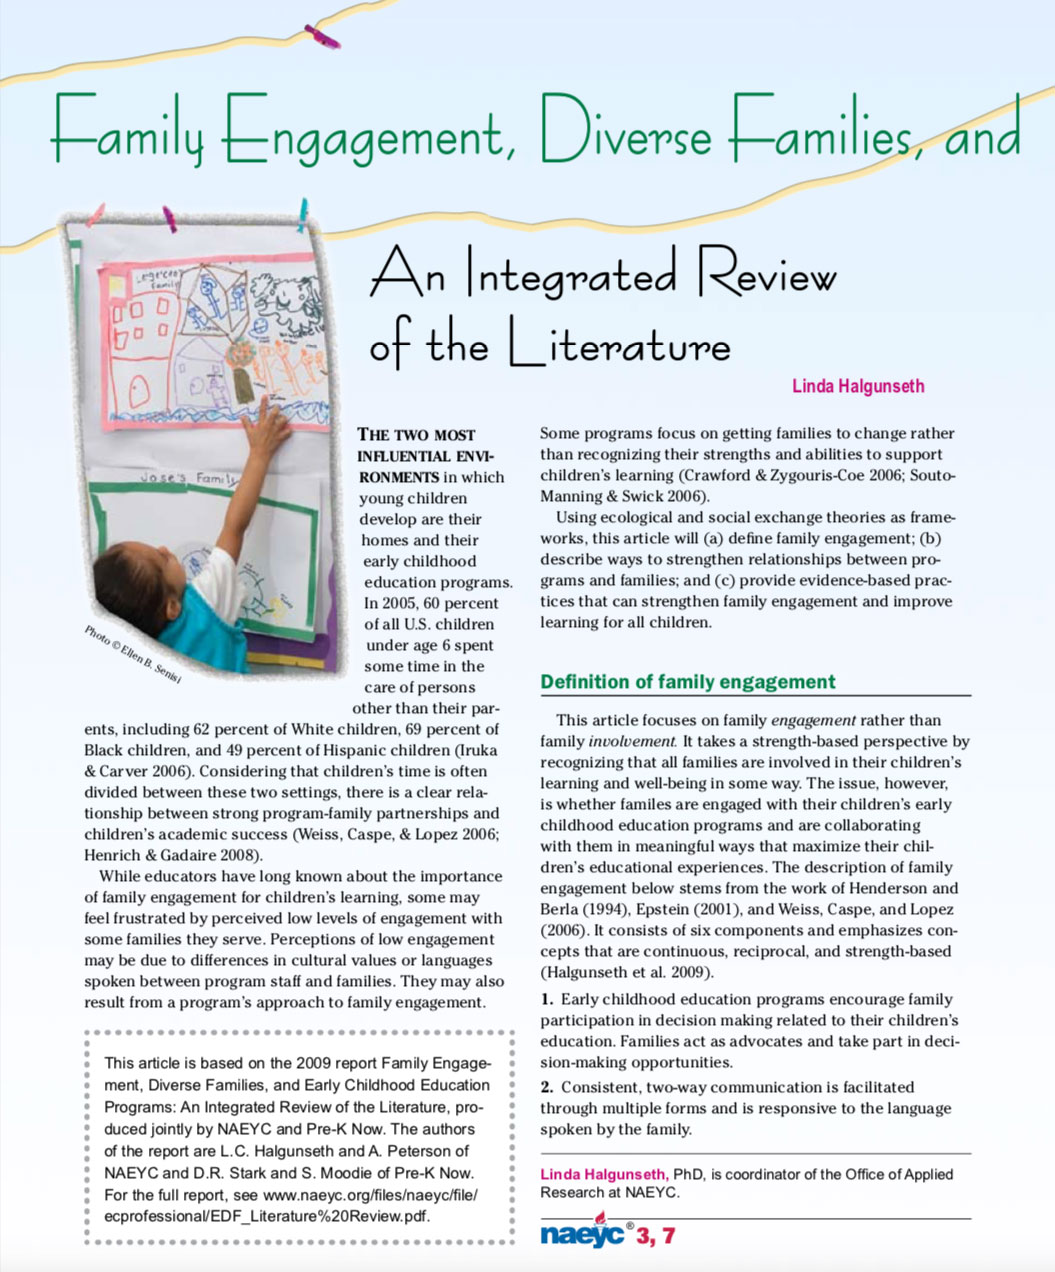 Family engagement, diverse families, and early childhood education programs: An integrated review of the literature by Linda Halgunseth